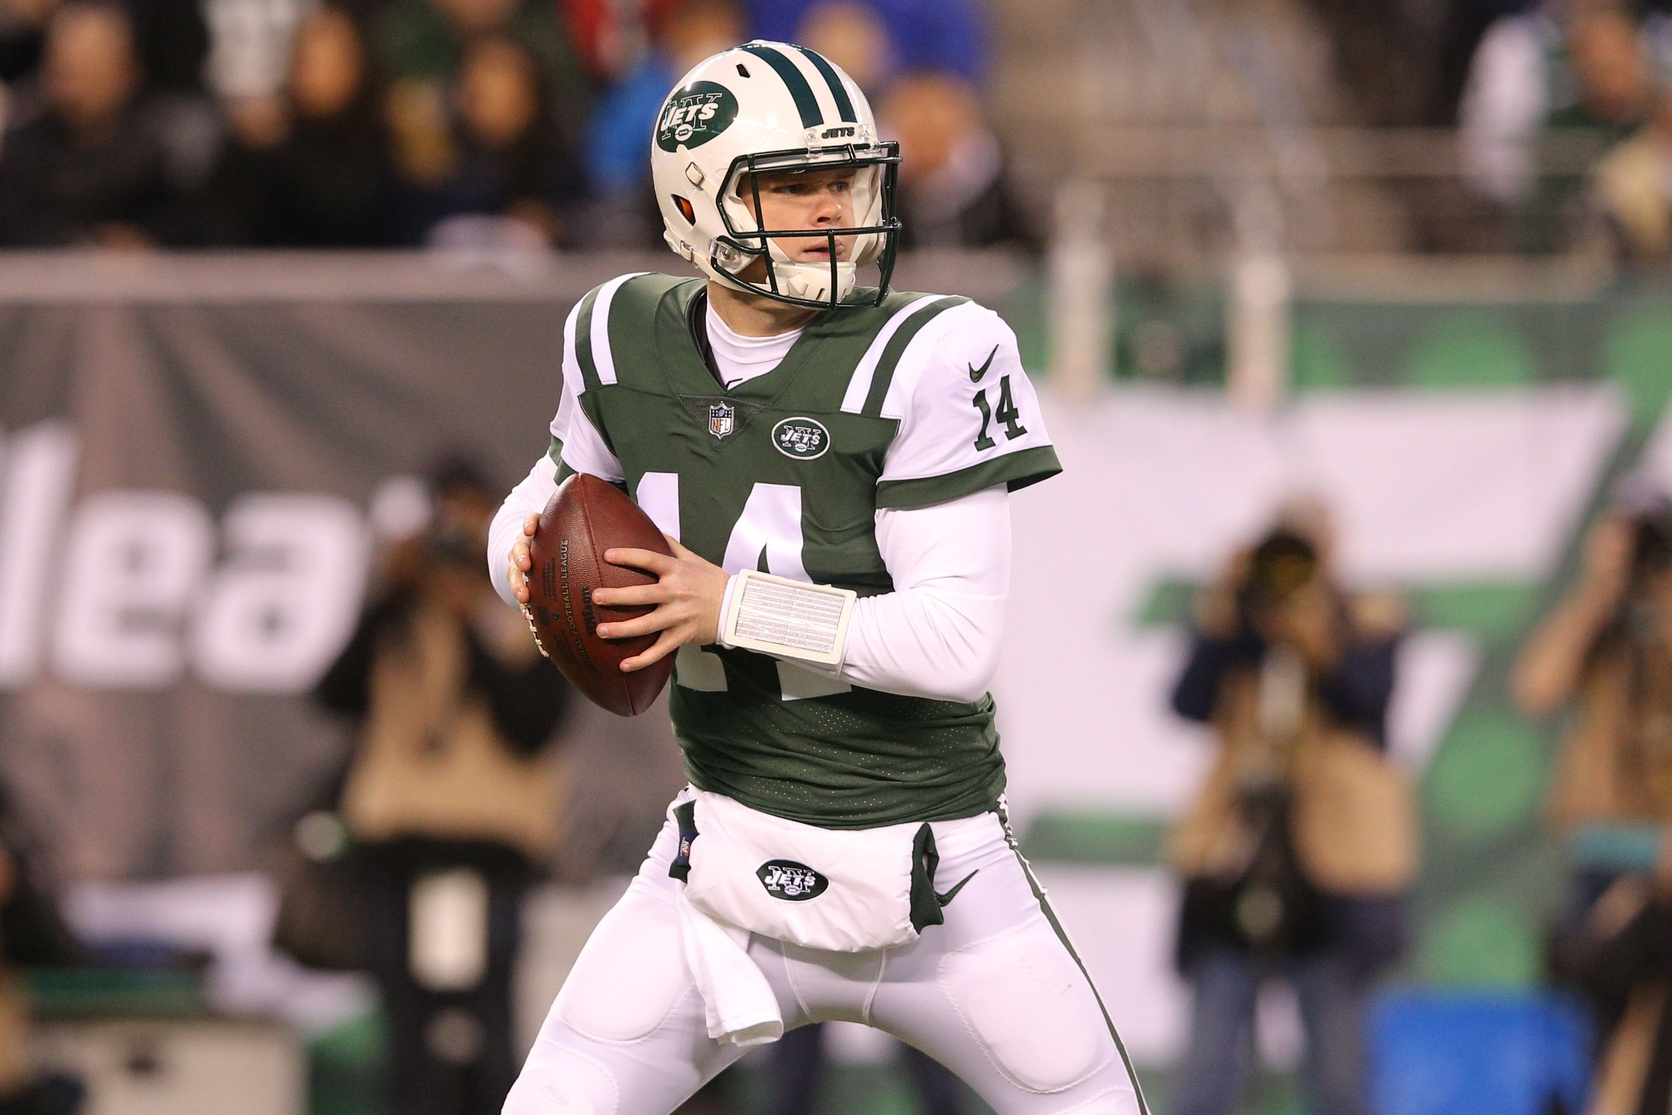 Sam Darnold's best performance to date should excite Jets fans for